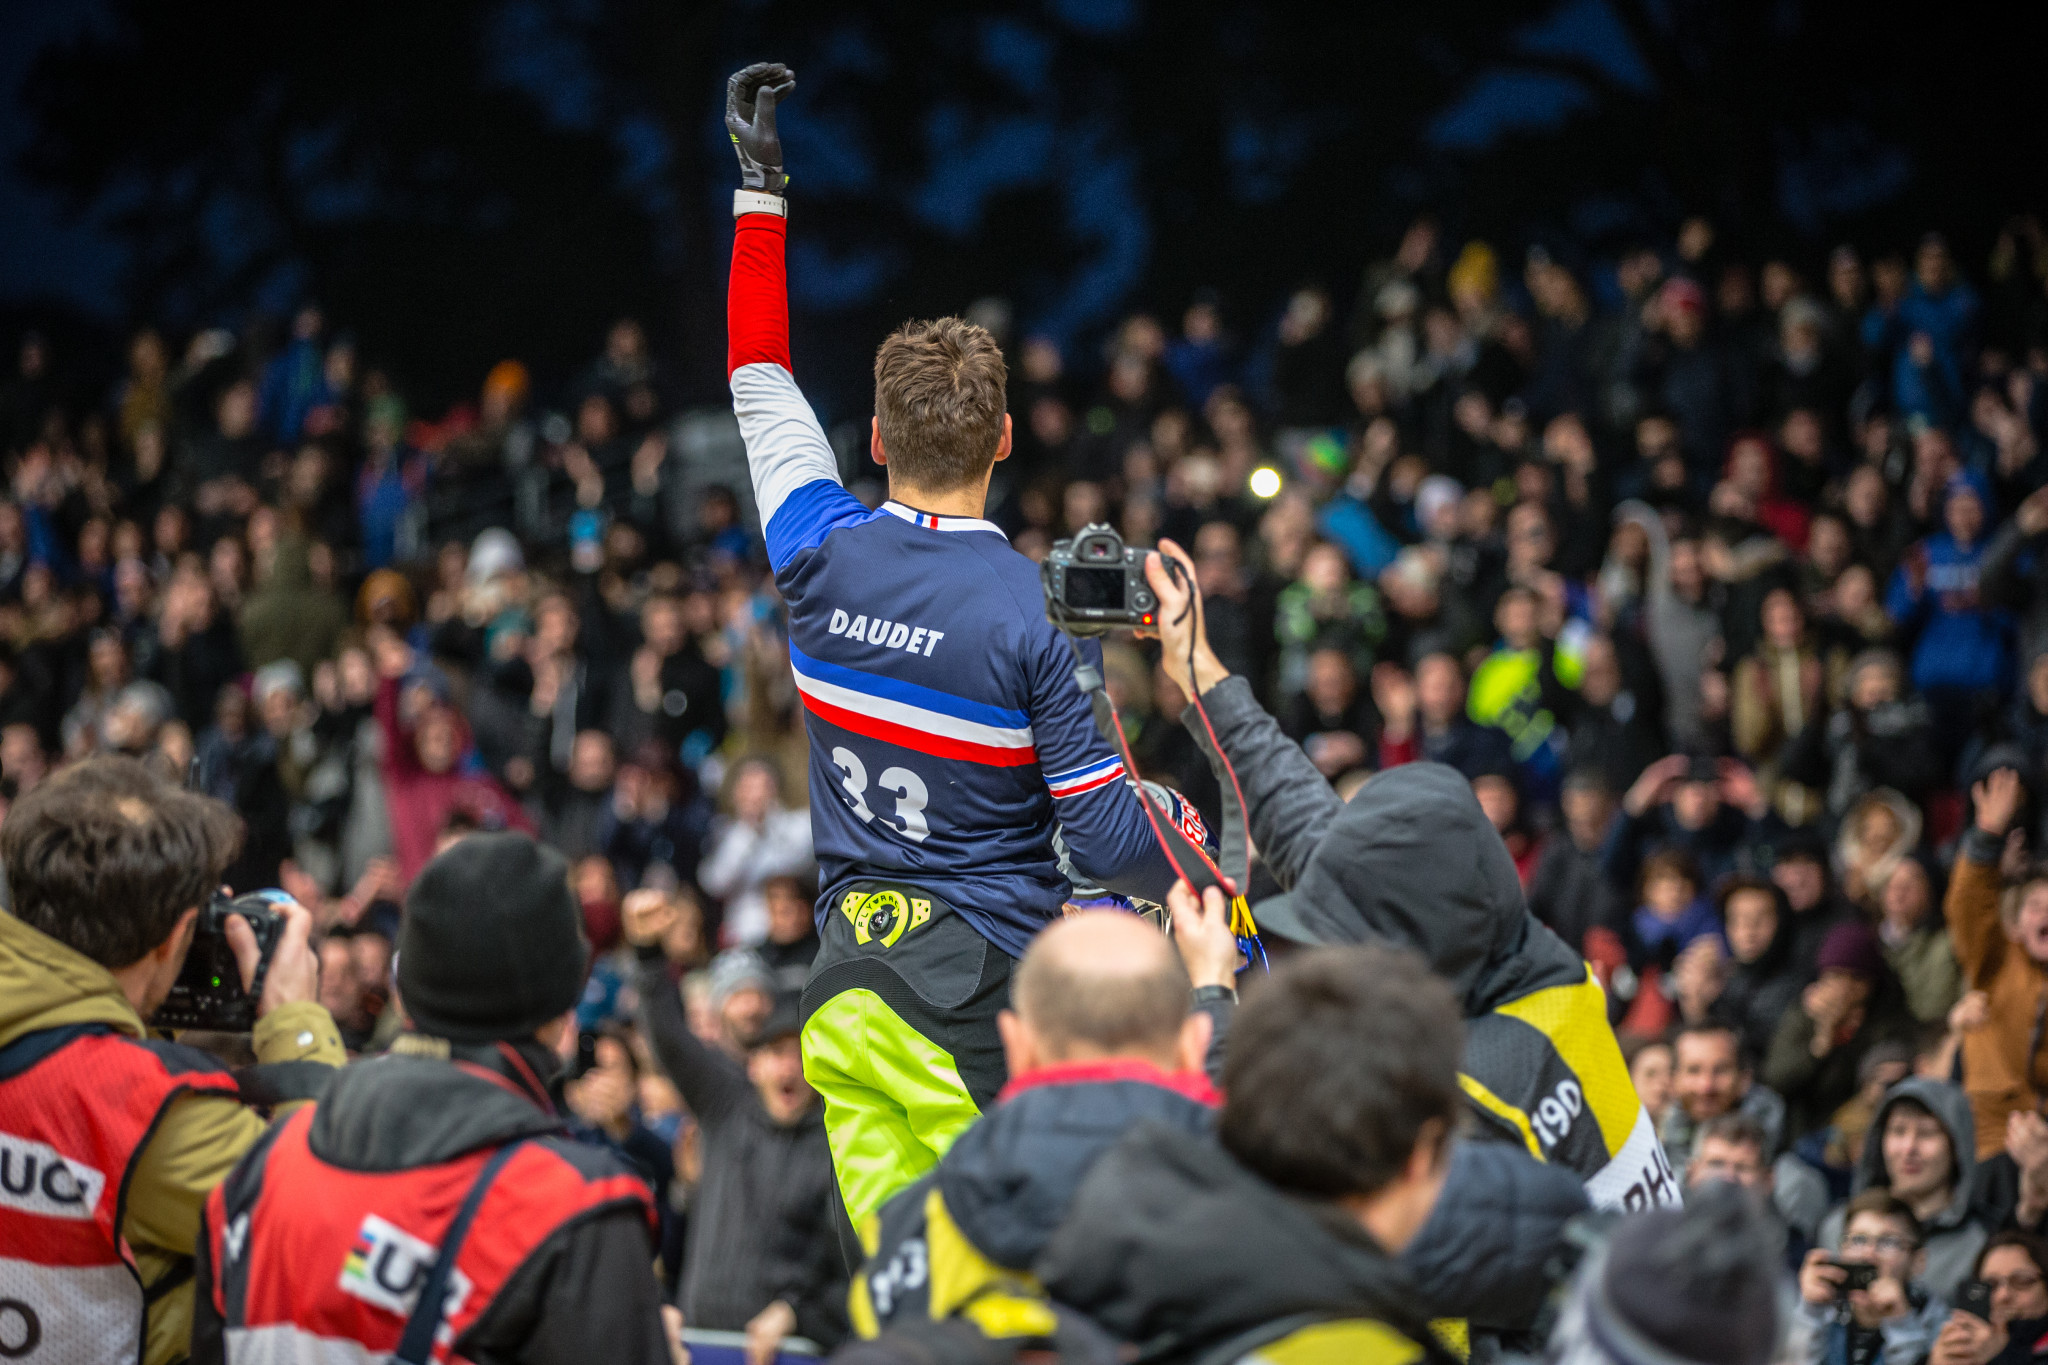 Frenchman Joris Daudet leads the International Cycling Union BMX Supercross World Cup rankings ©Craig Dutton